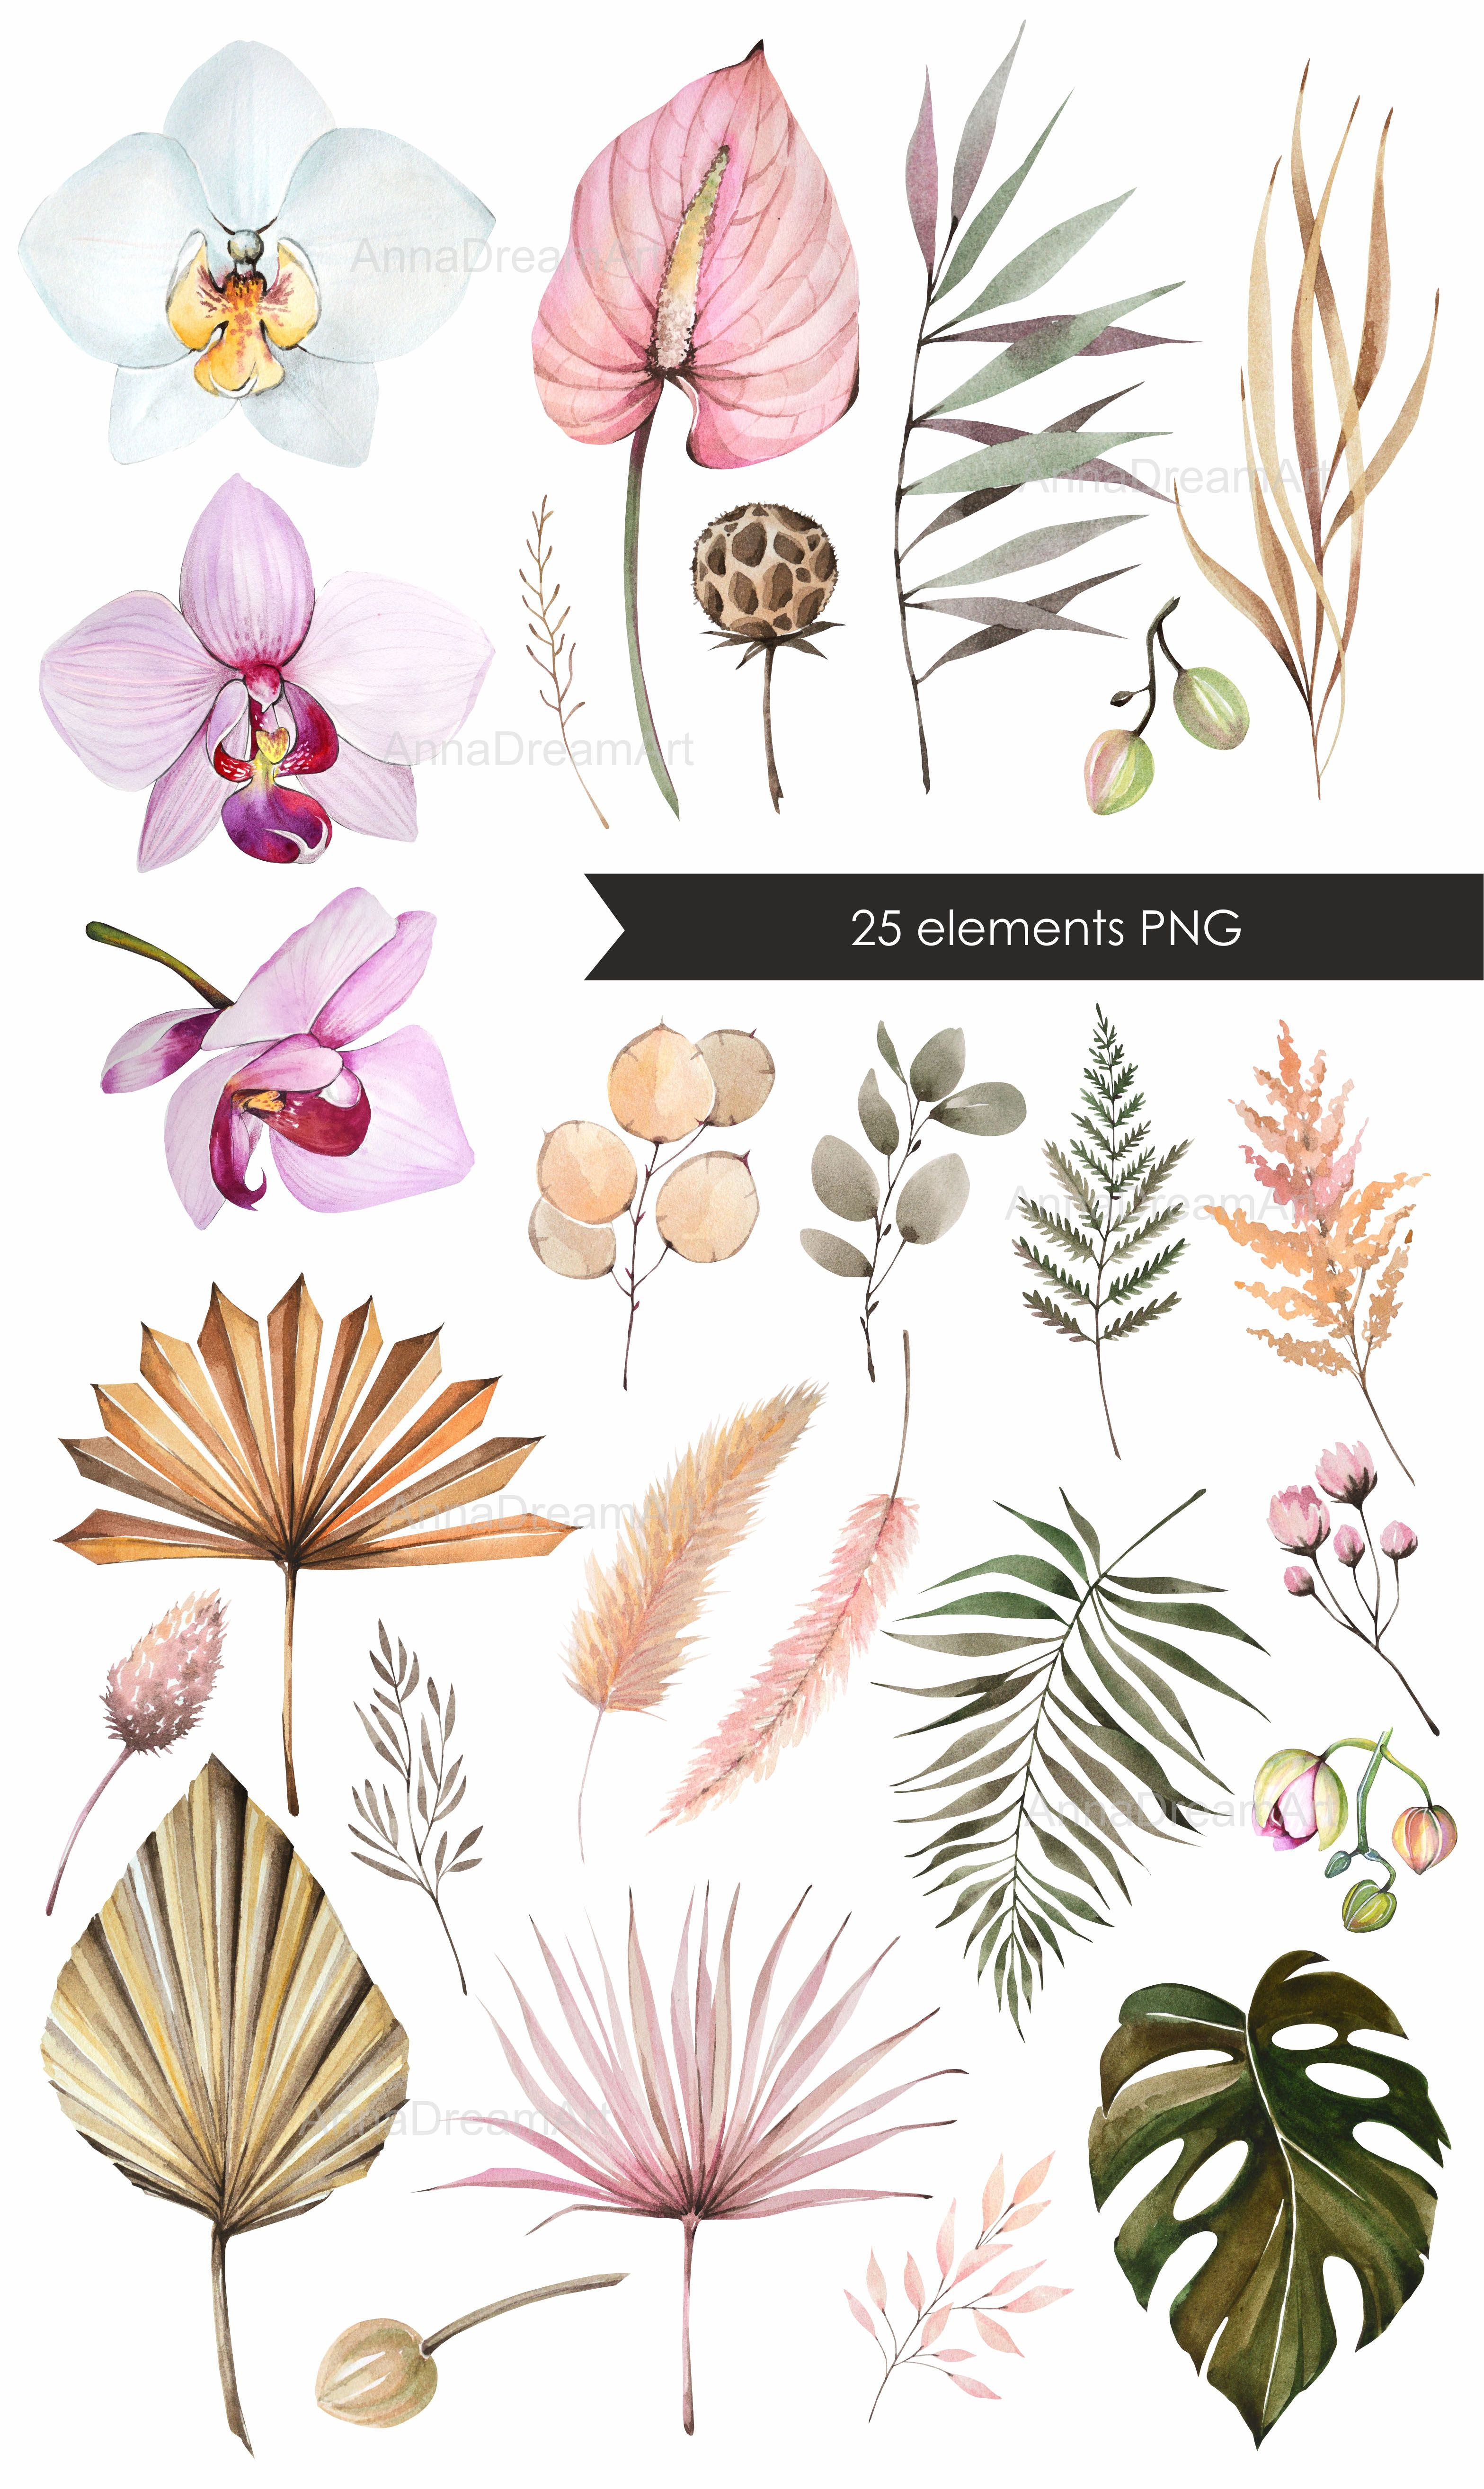 Watercolor Clipart Dried Tropical Flowers And Leaves Boho Wedding Invitation Flowers Set Orchids Palm Leaves Png In 2021 Tropical Flowers Illustration Flower Drawing Watercolor Flowers